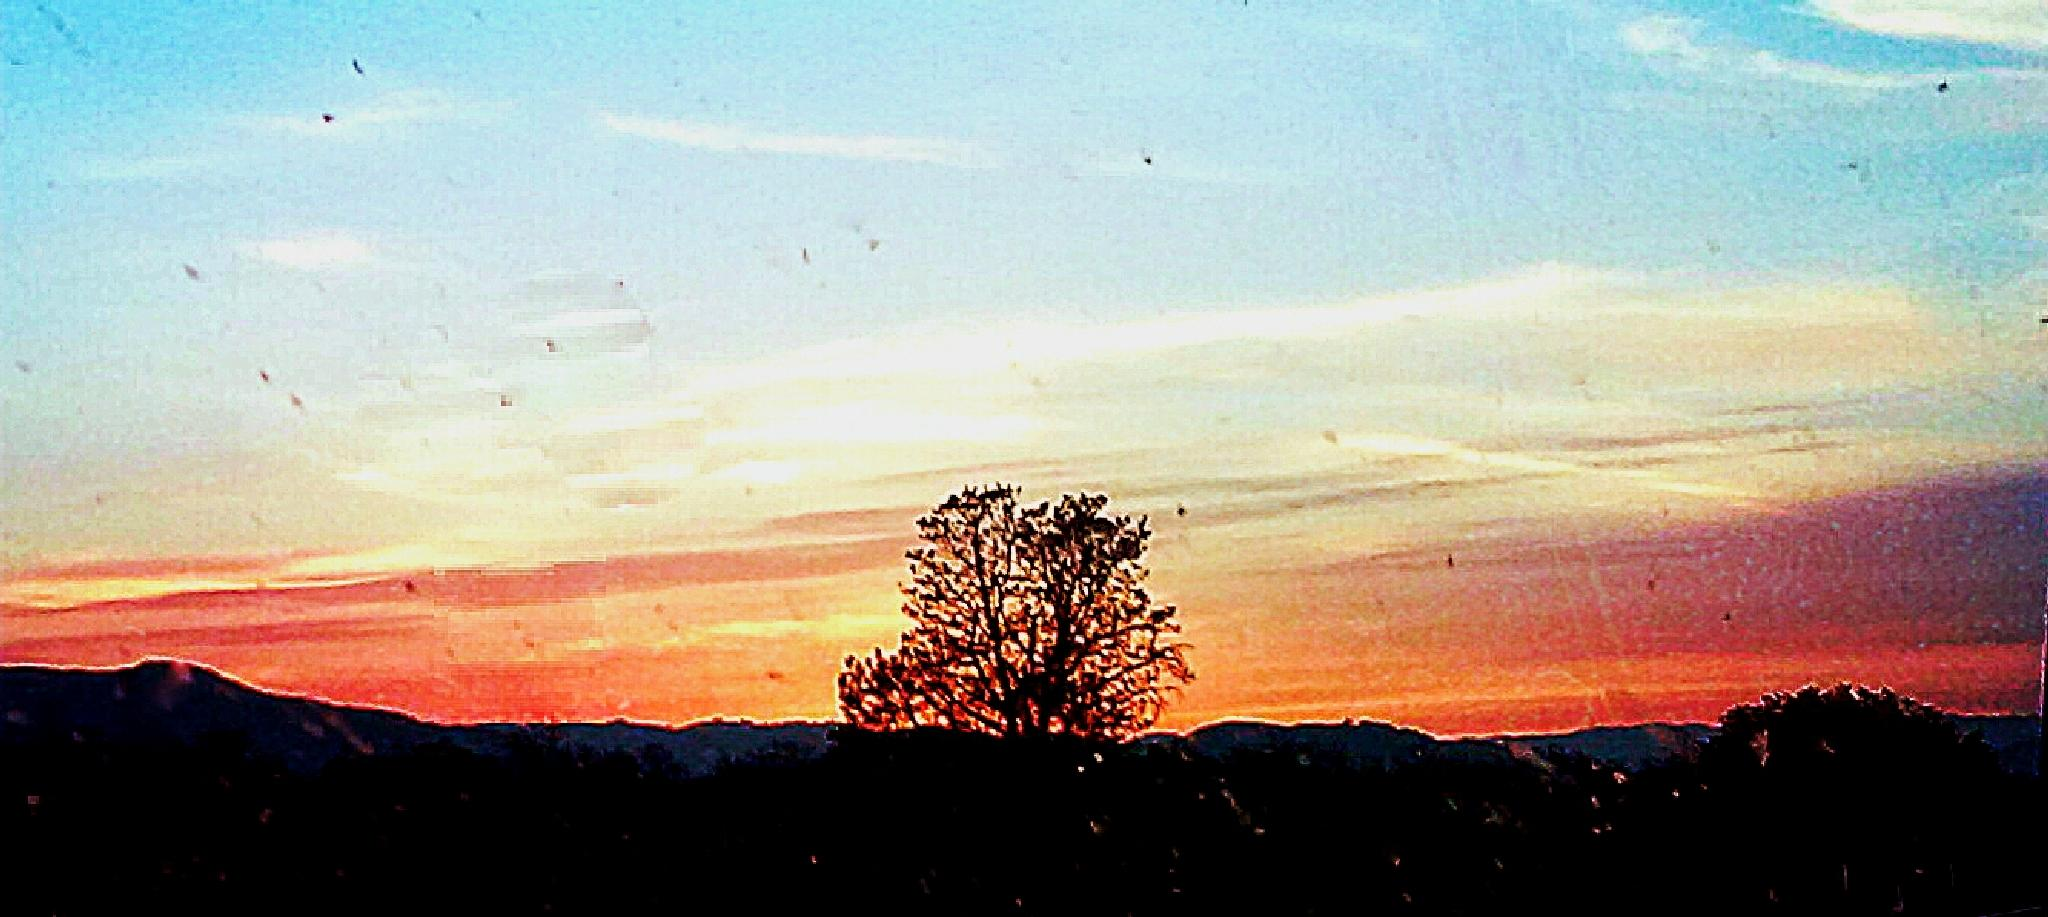 Lone Tree Sunset by frndlyghost2